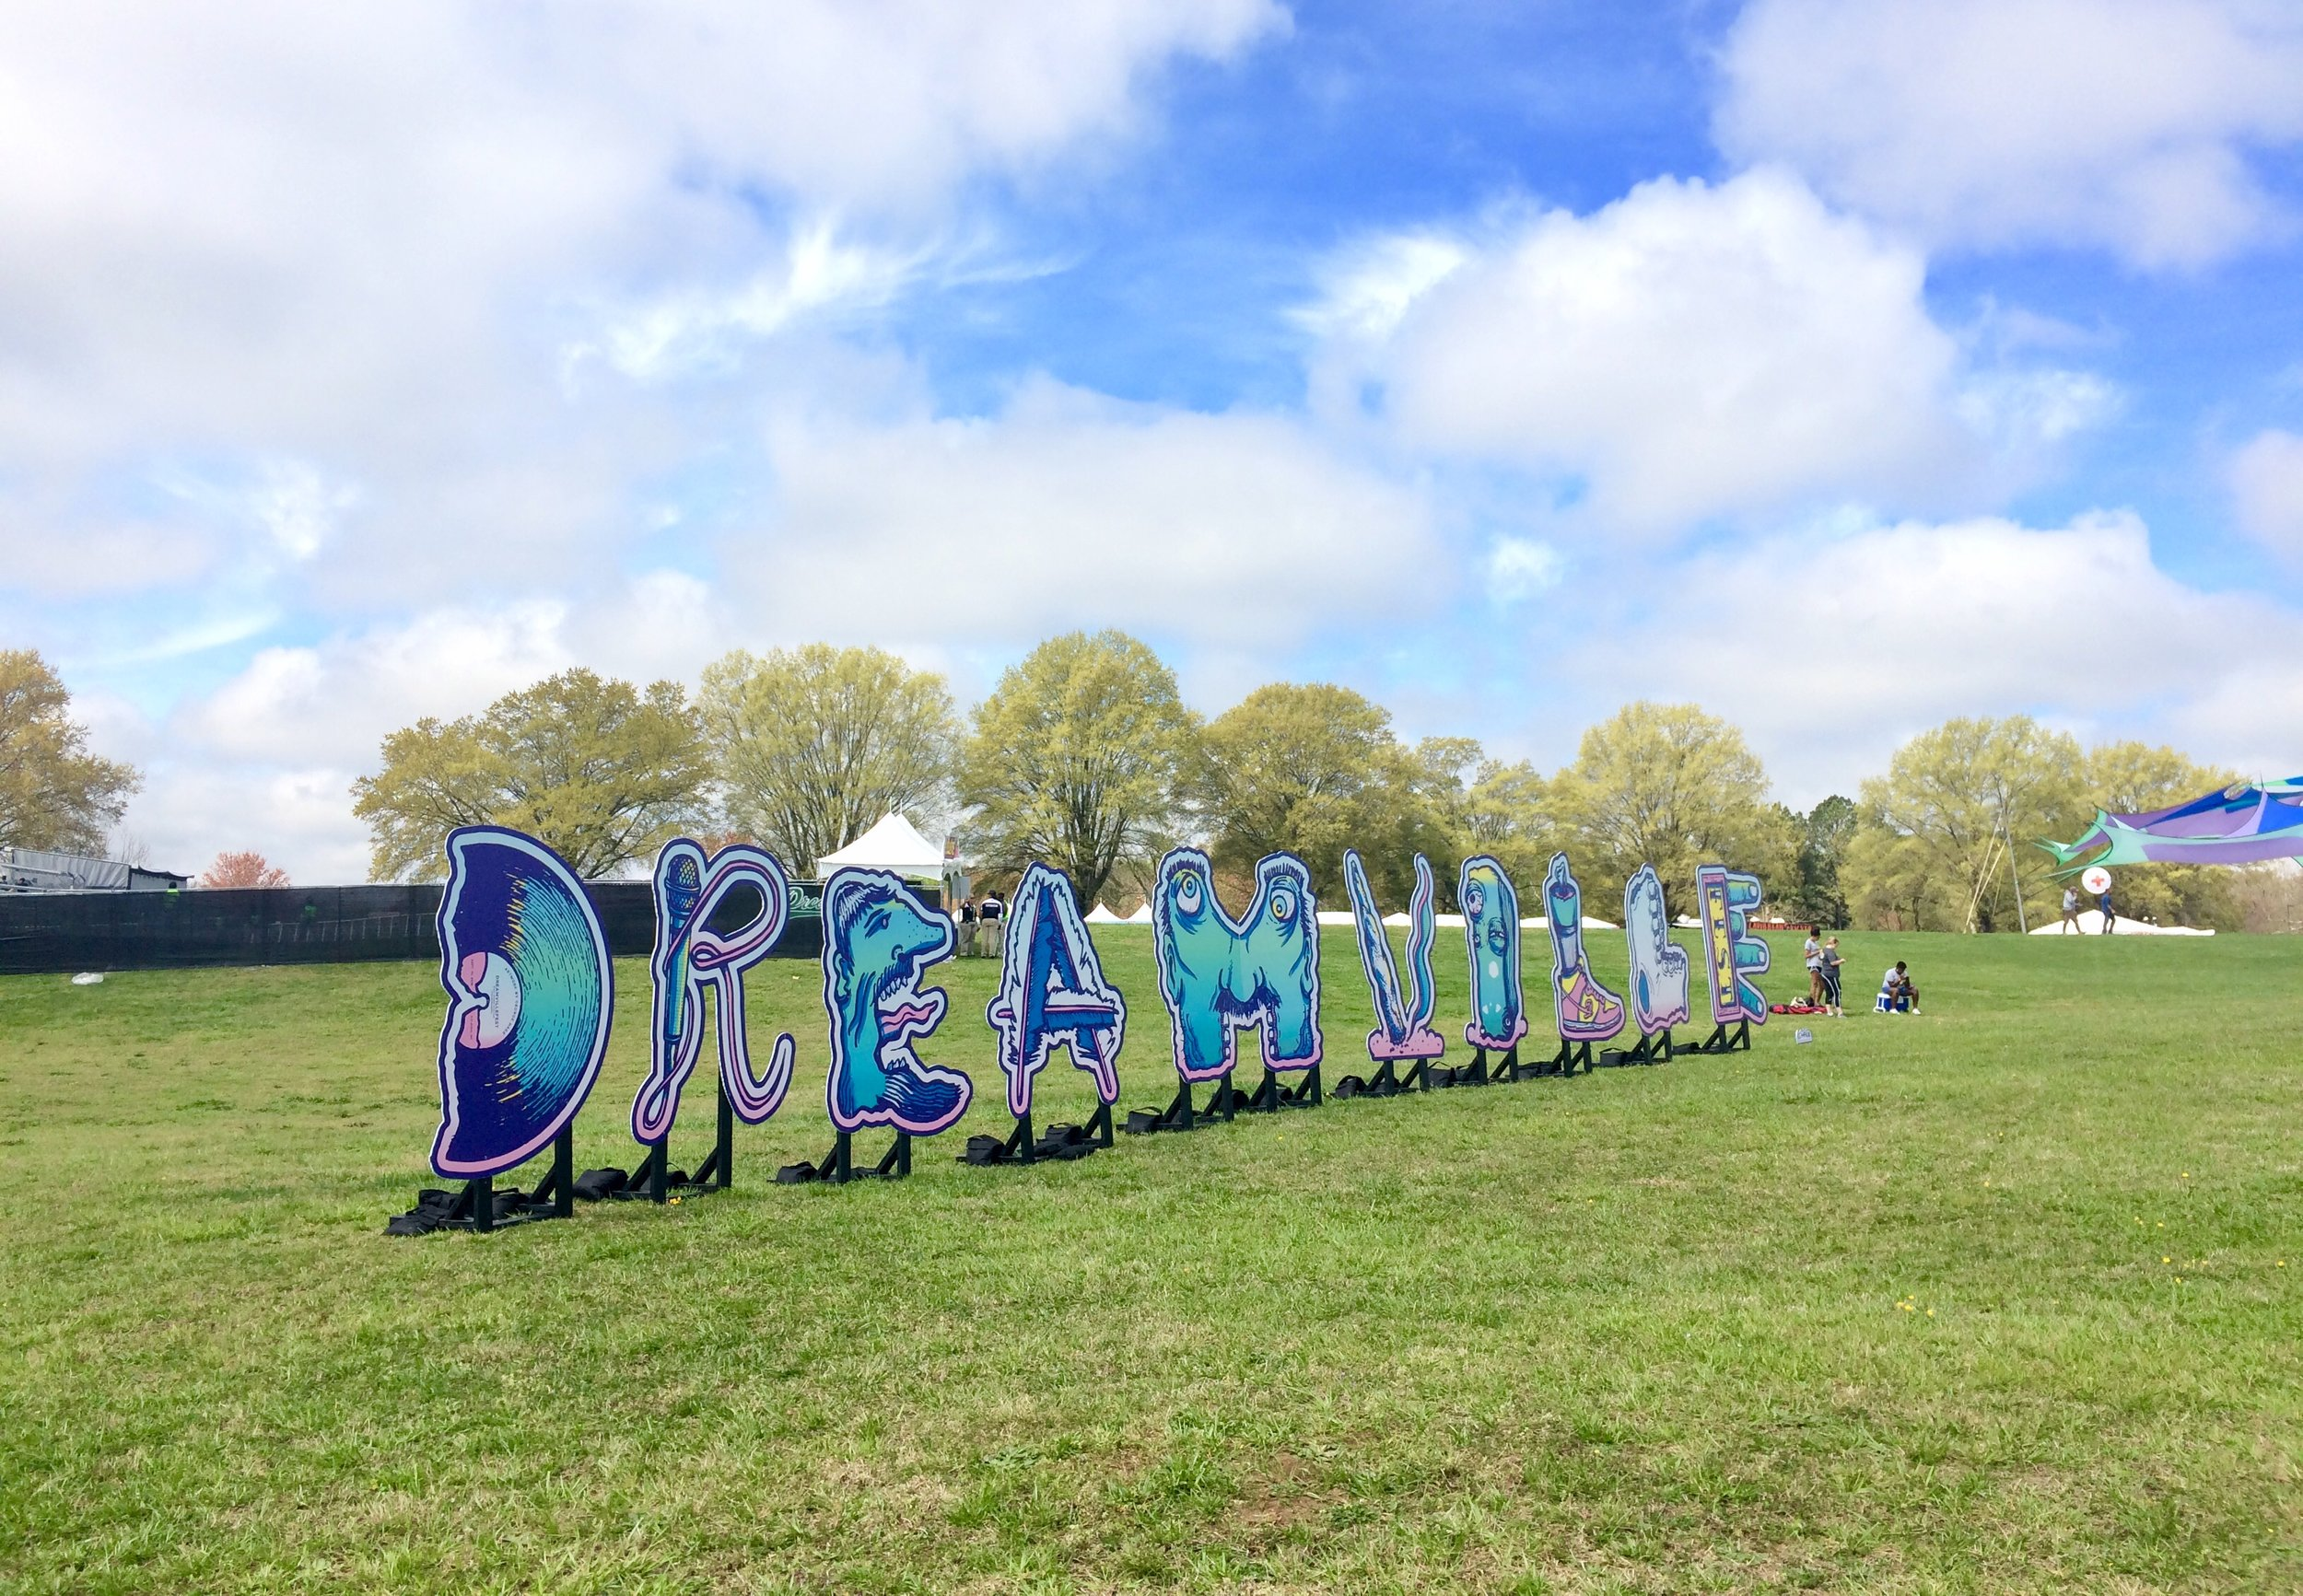 DreamvilleFest_20190406_PhotoGH9.jpg